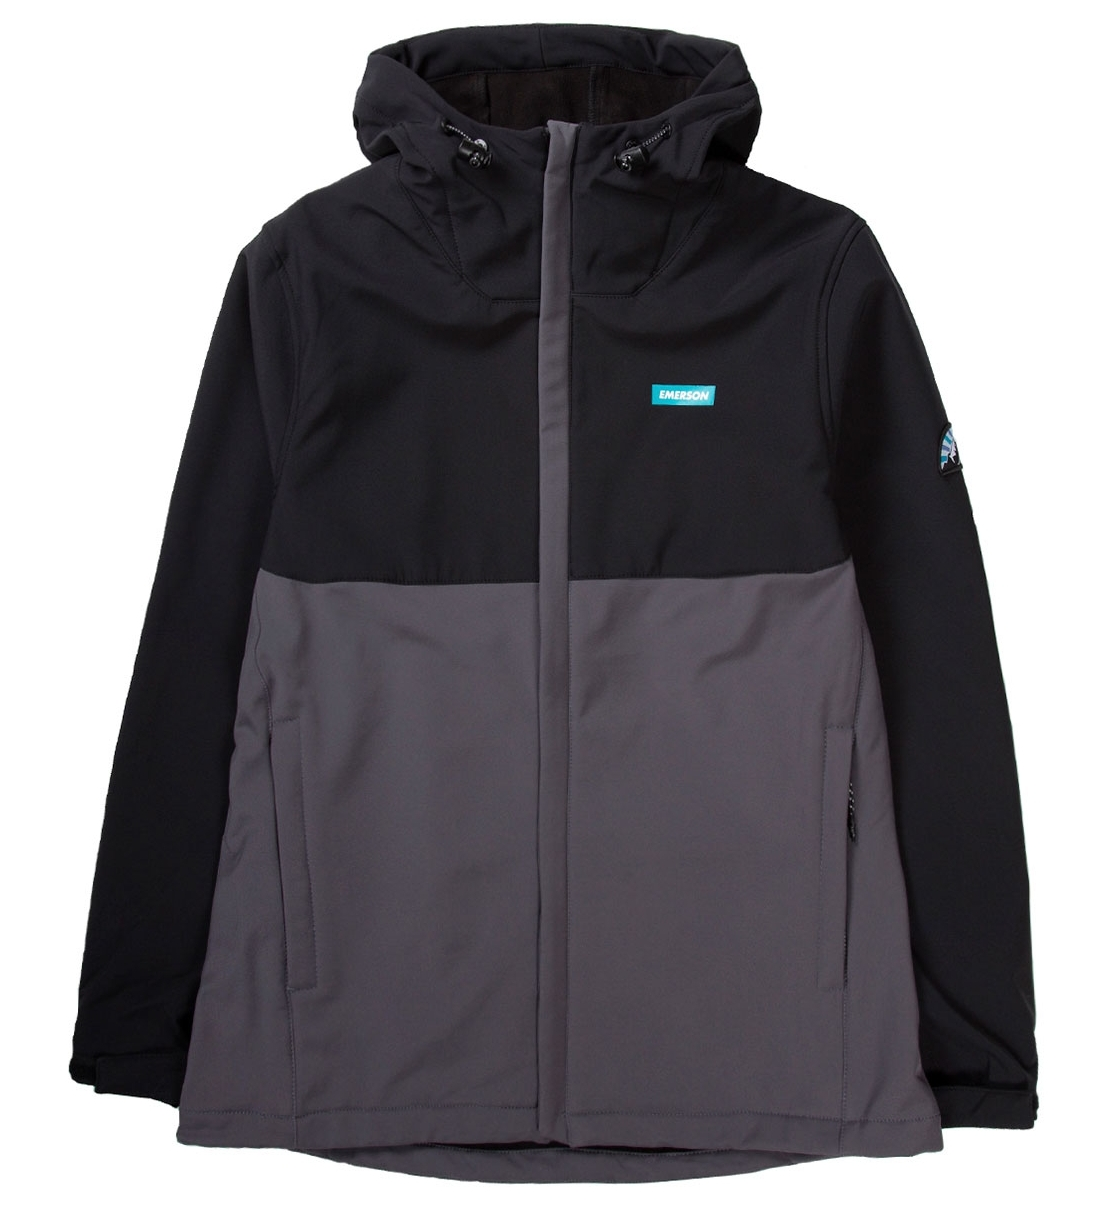 Emerson Fw19 Men'S Soft Shell Jacket With Hood